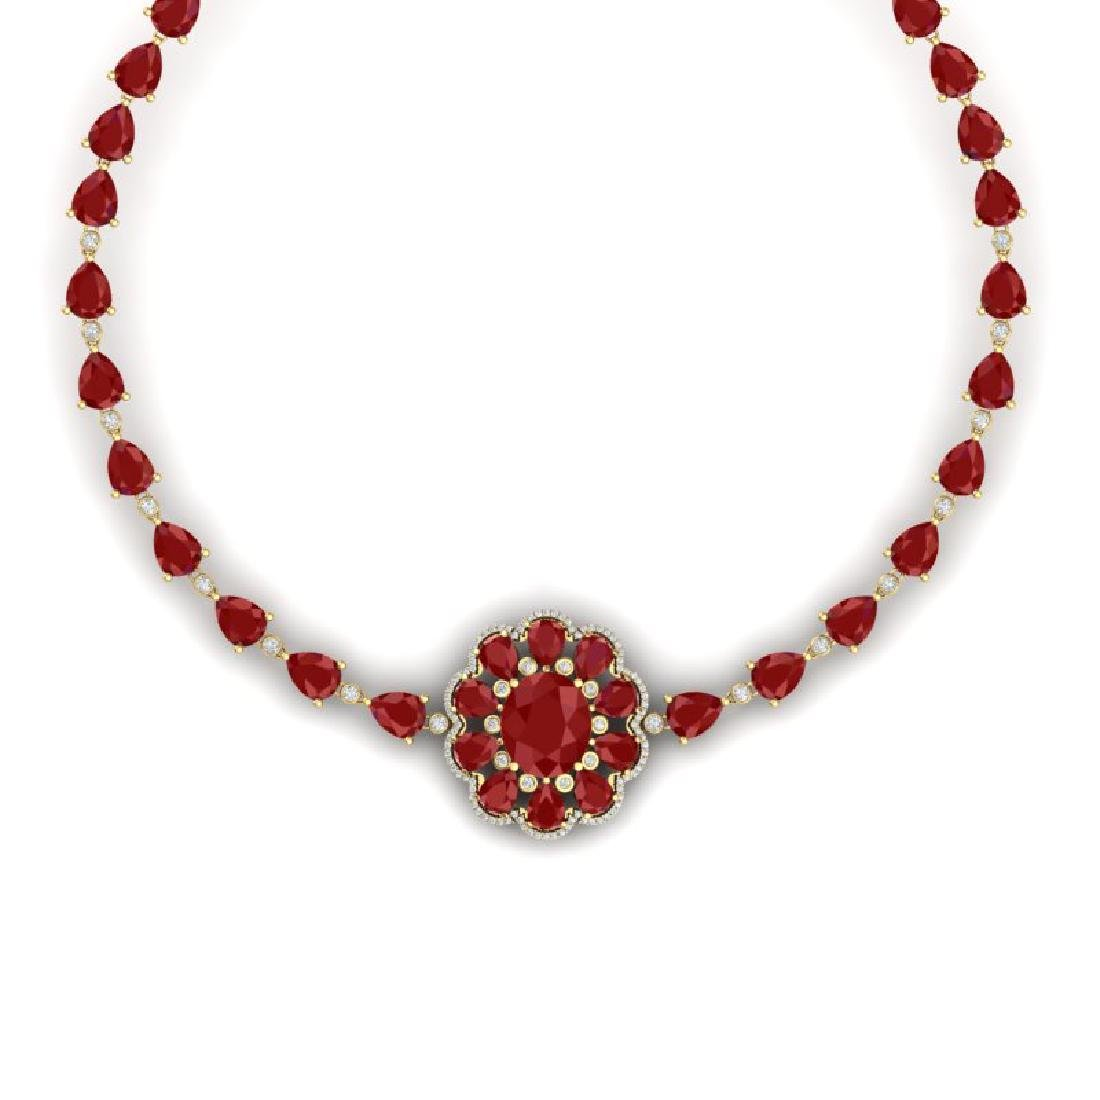 78.98 CTW Royalty Ruby & VS Diamond Necklace 18K Yellow - 2